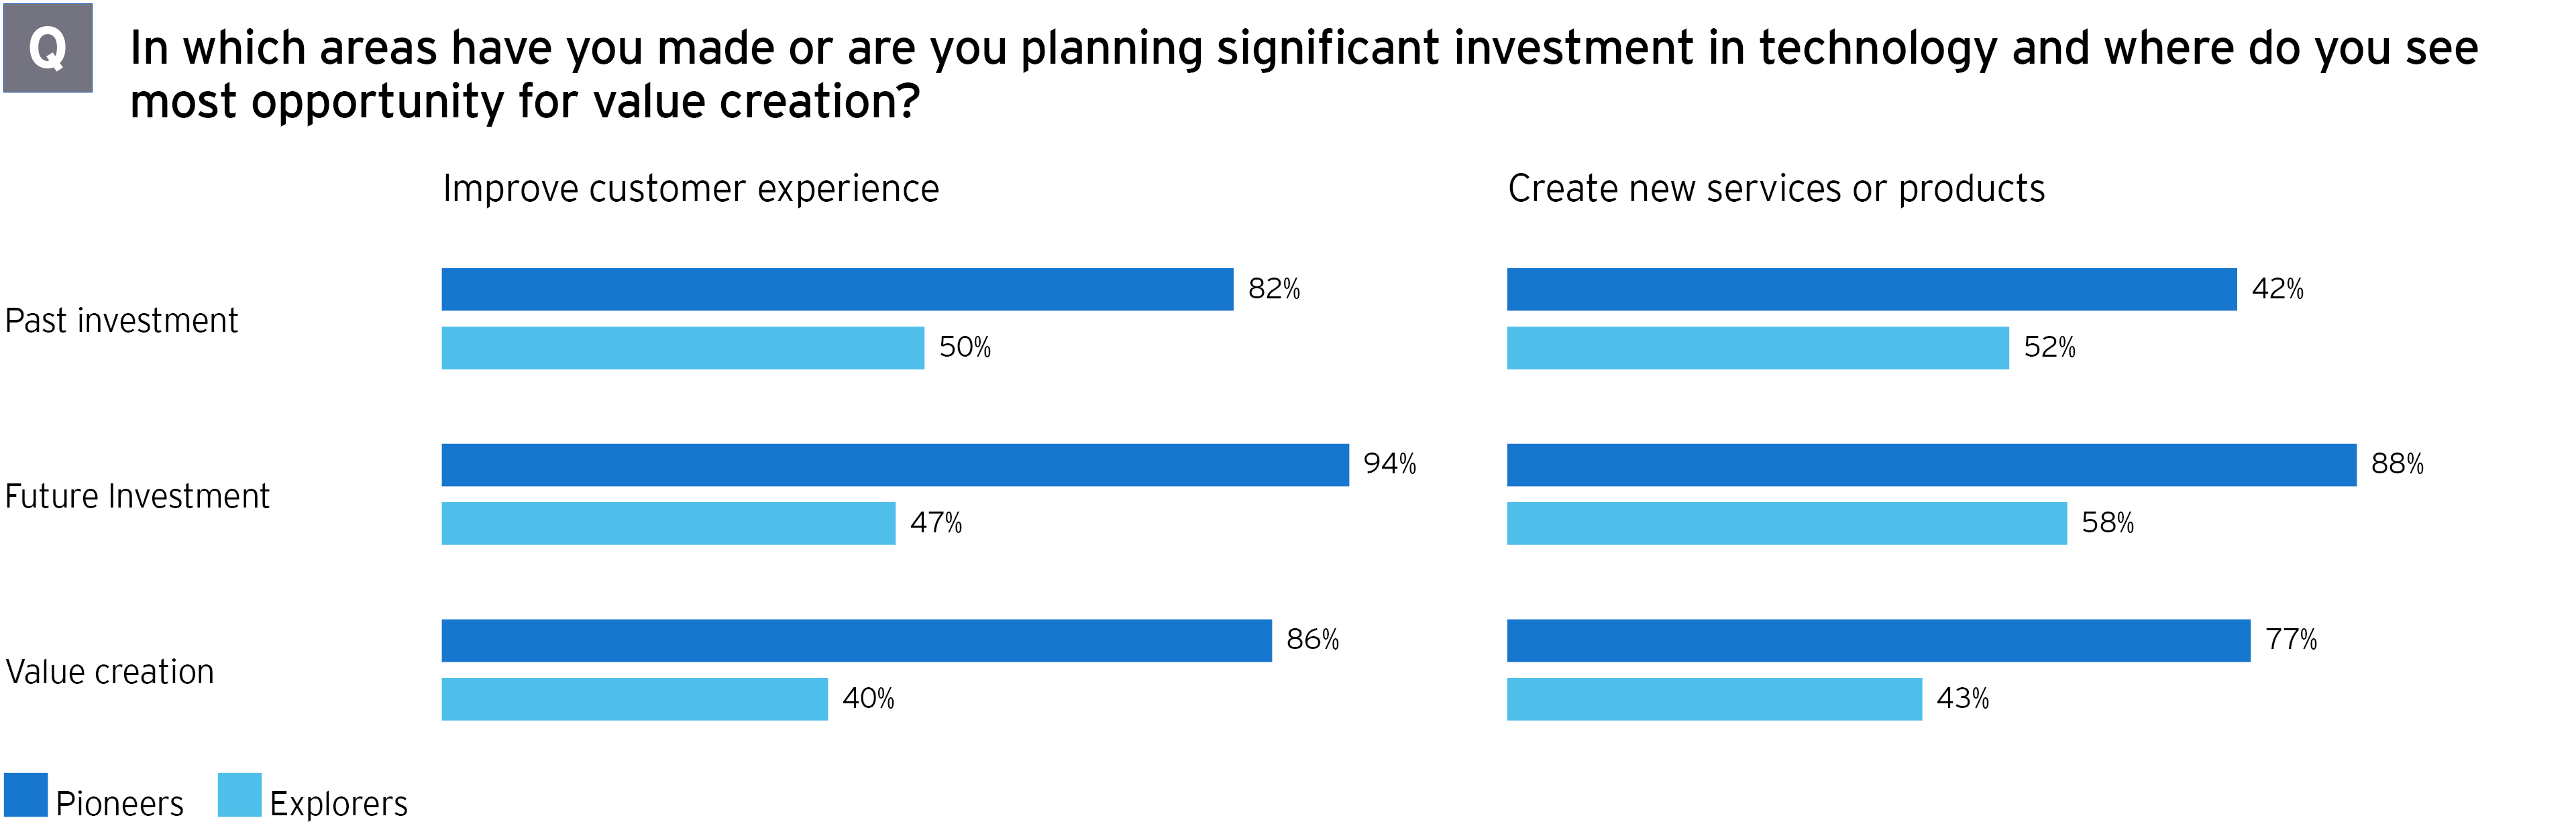 M&A survey areas of significant investment in technology graph